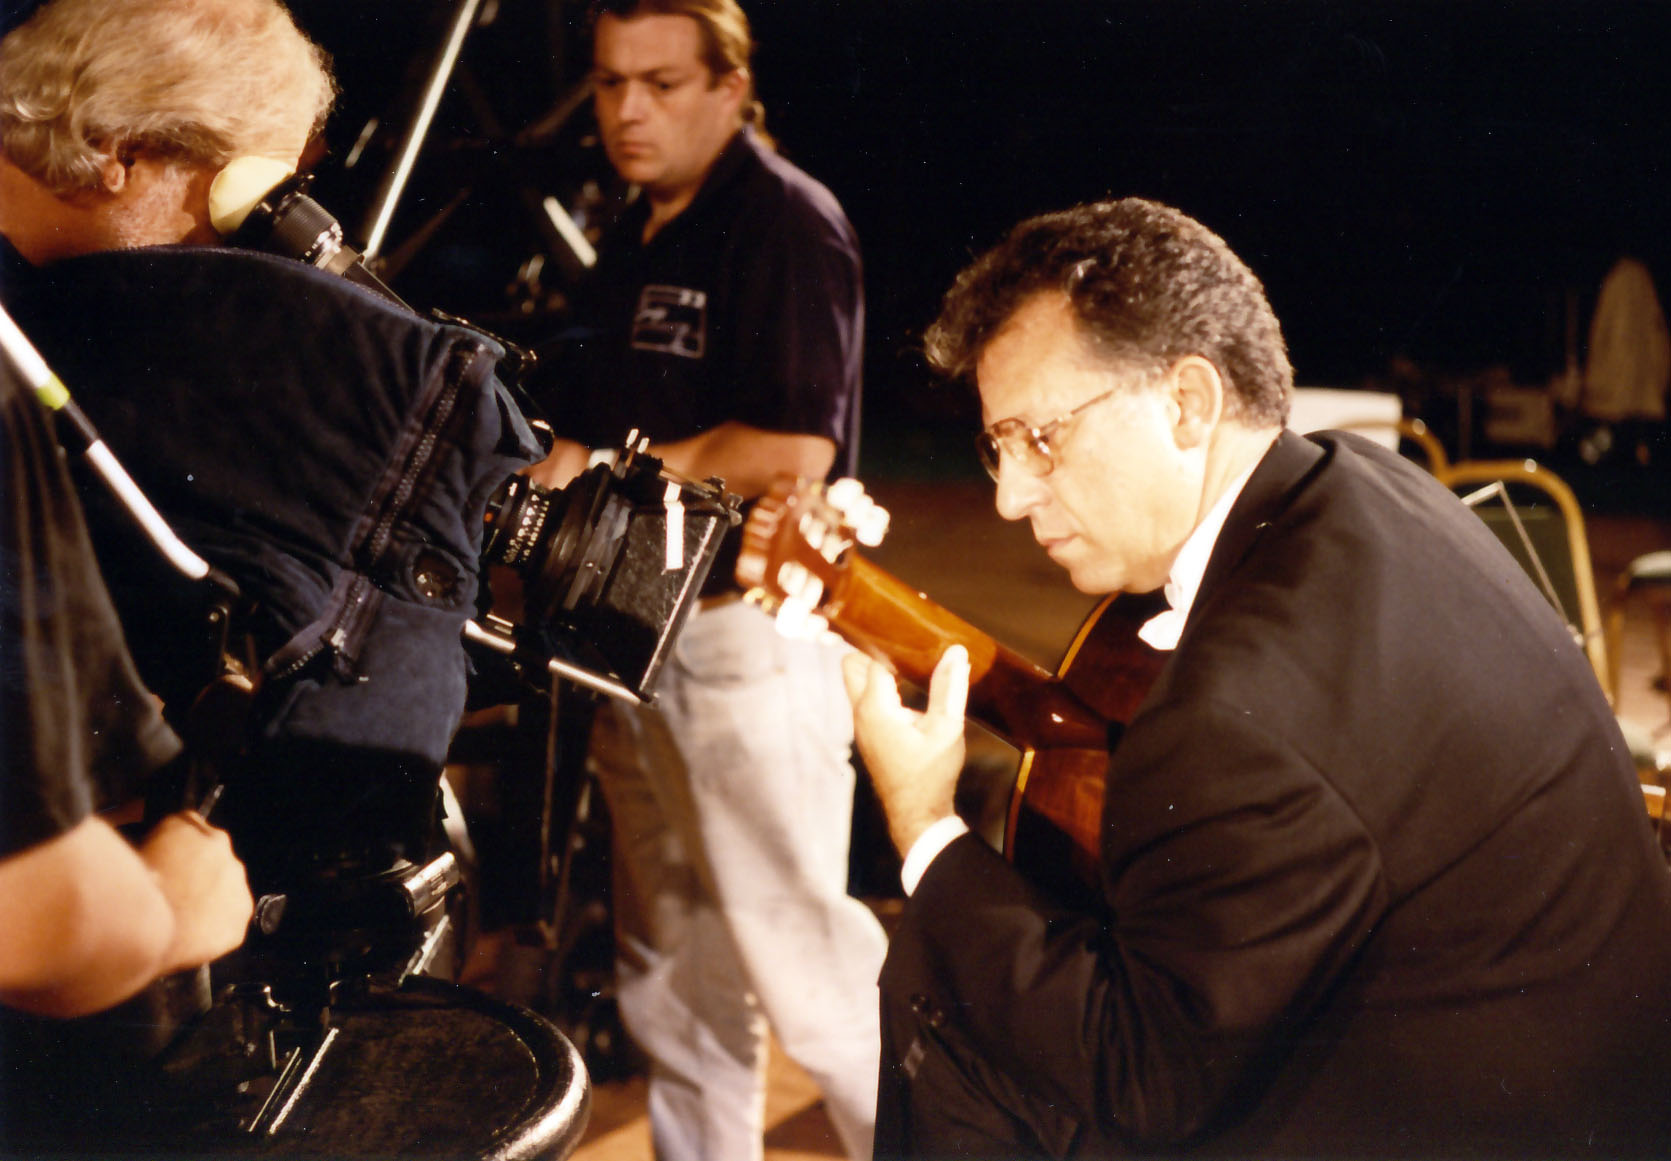 Filming live performance in ¨Rodrigo at 90: Shadows and Light¨